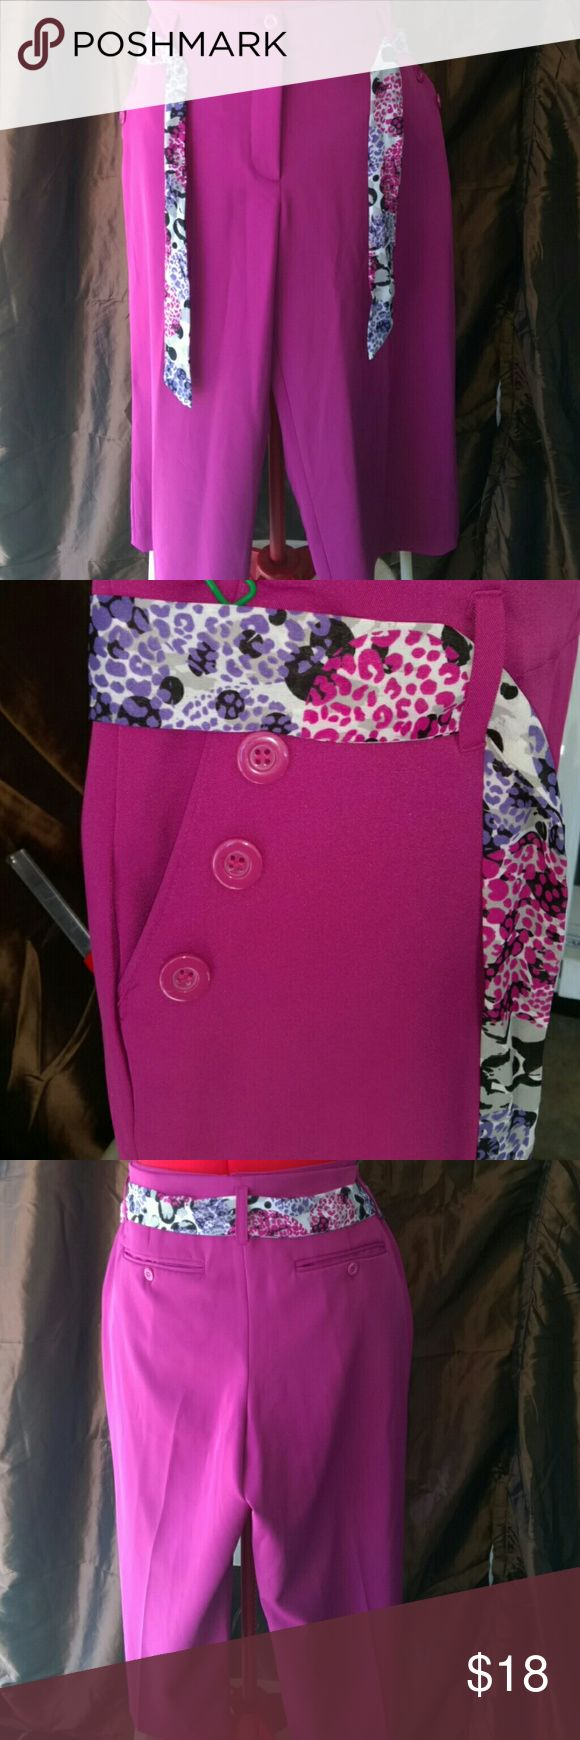 Fuchsia wide leg Capri trousers Brand new fuchsia wide leg Capri trousers Pants Capris